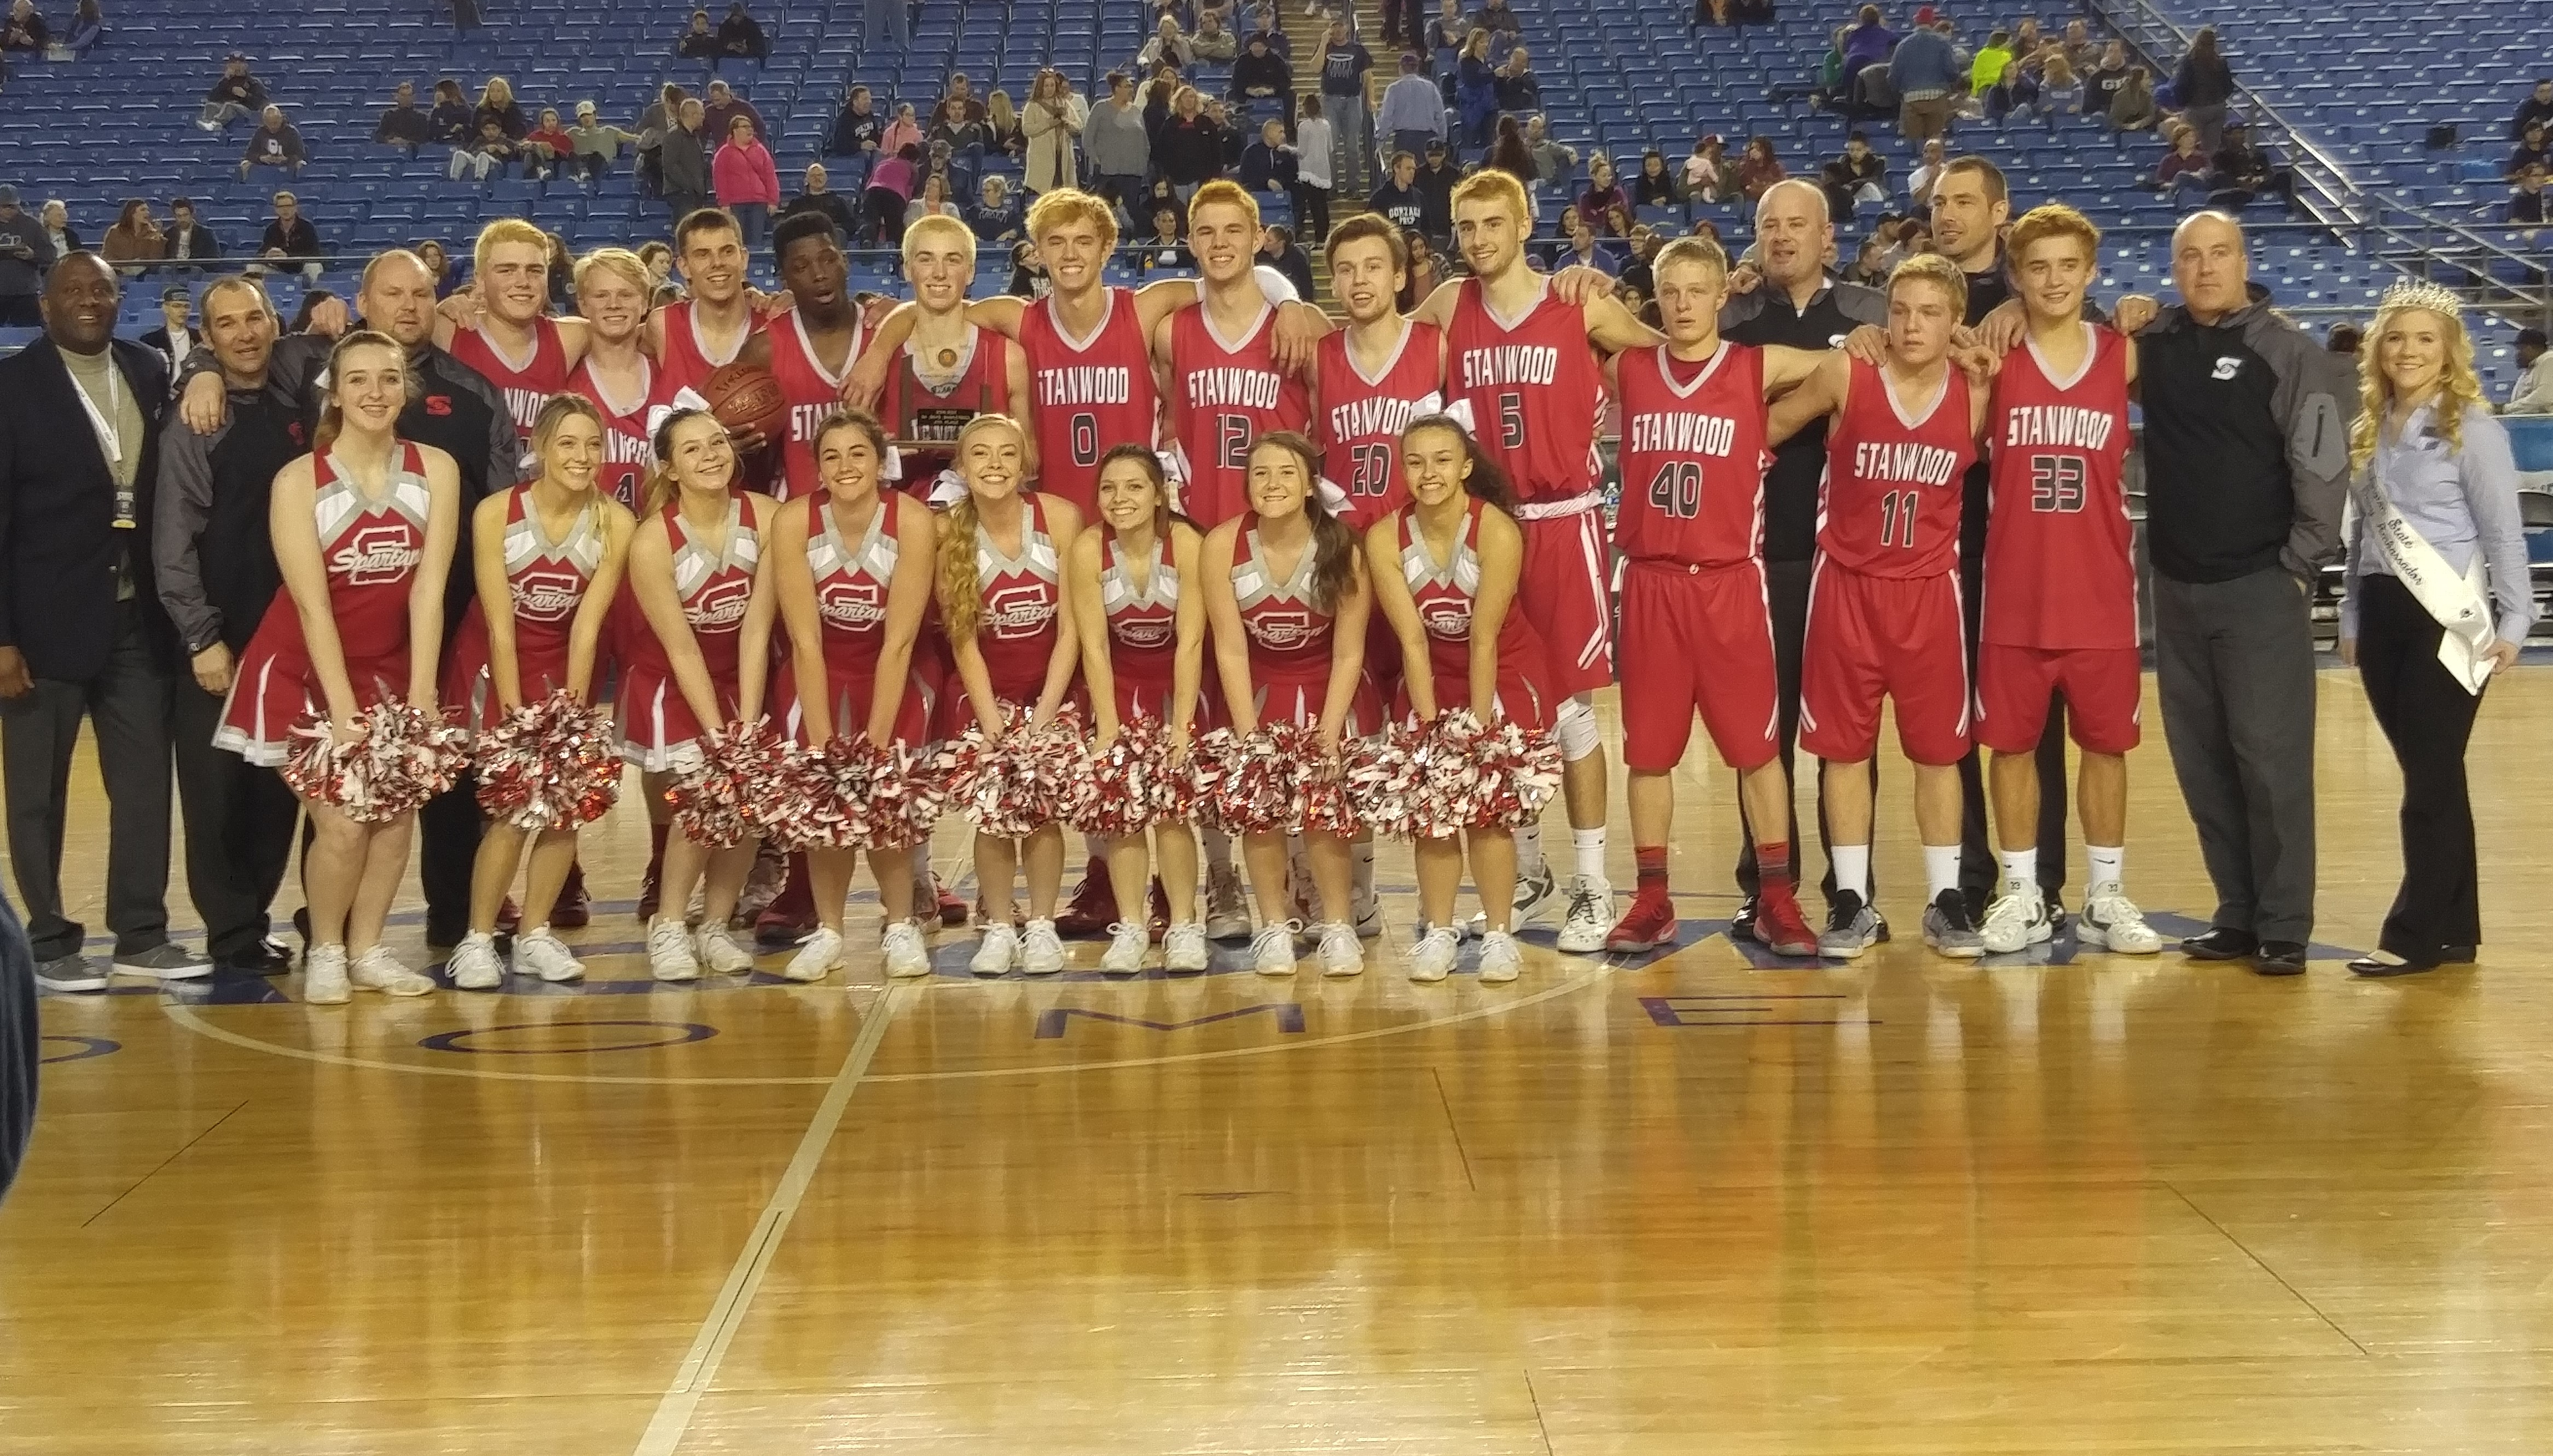 Stanwood Spartans with 4th Place Trophy